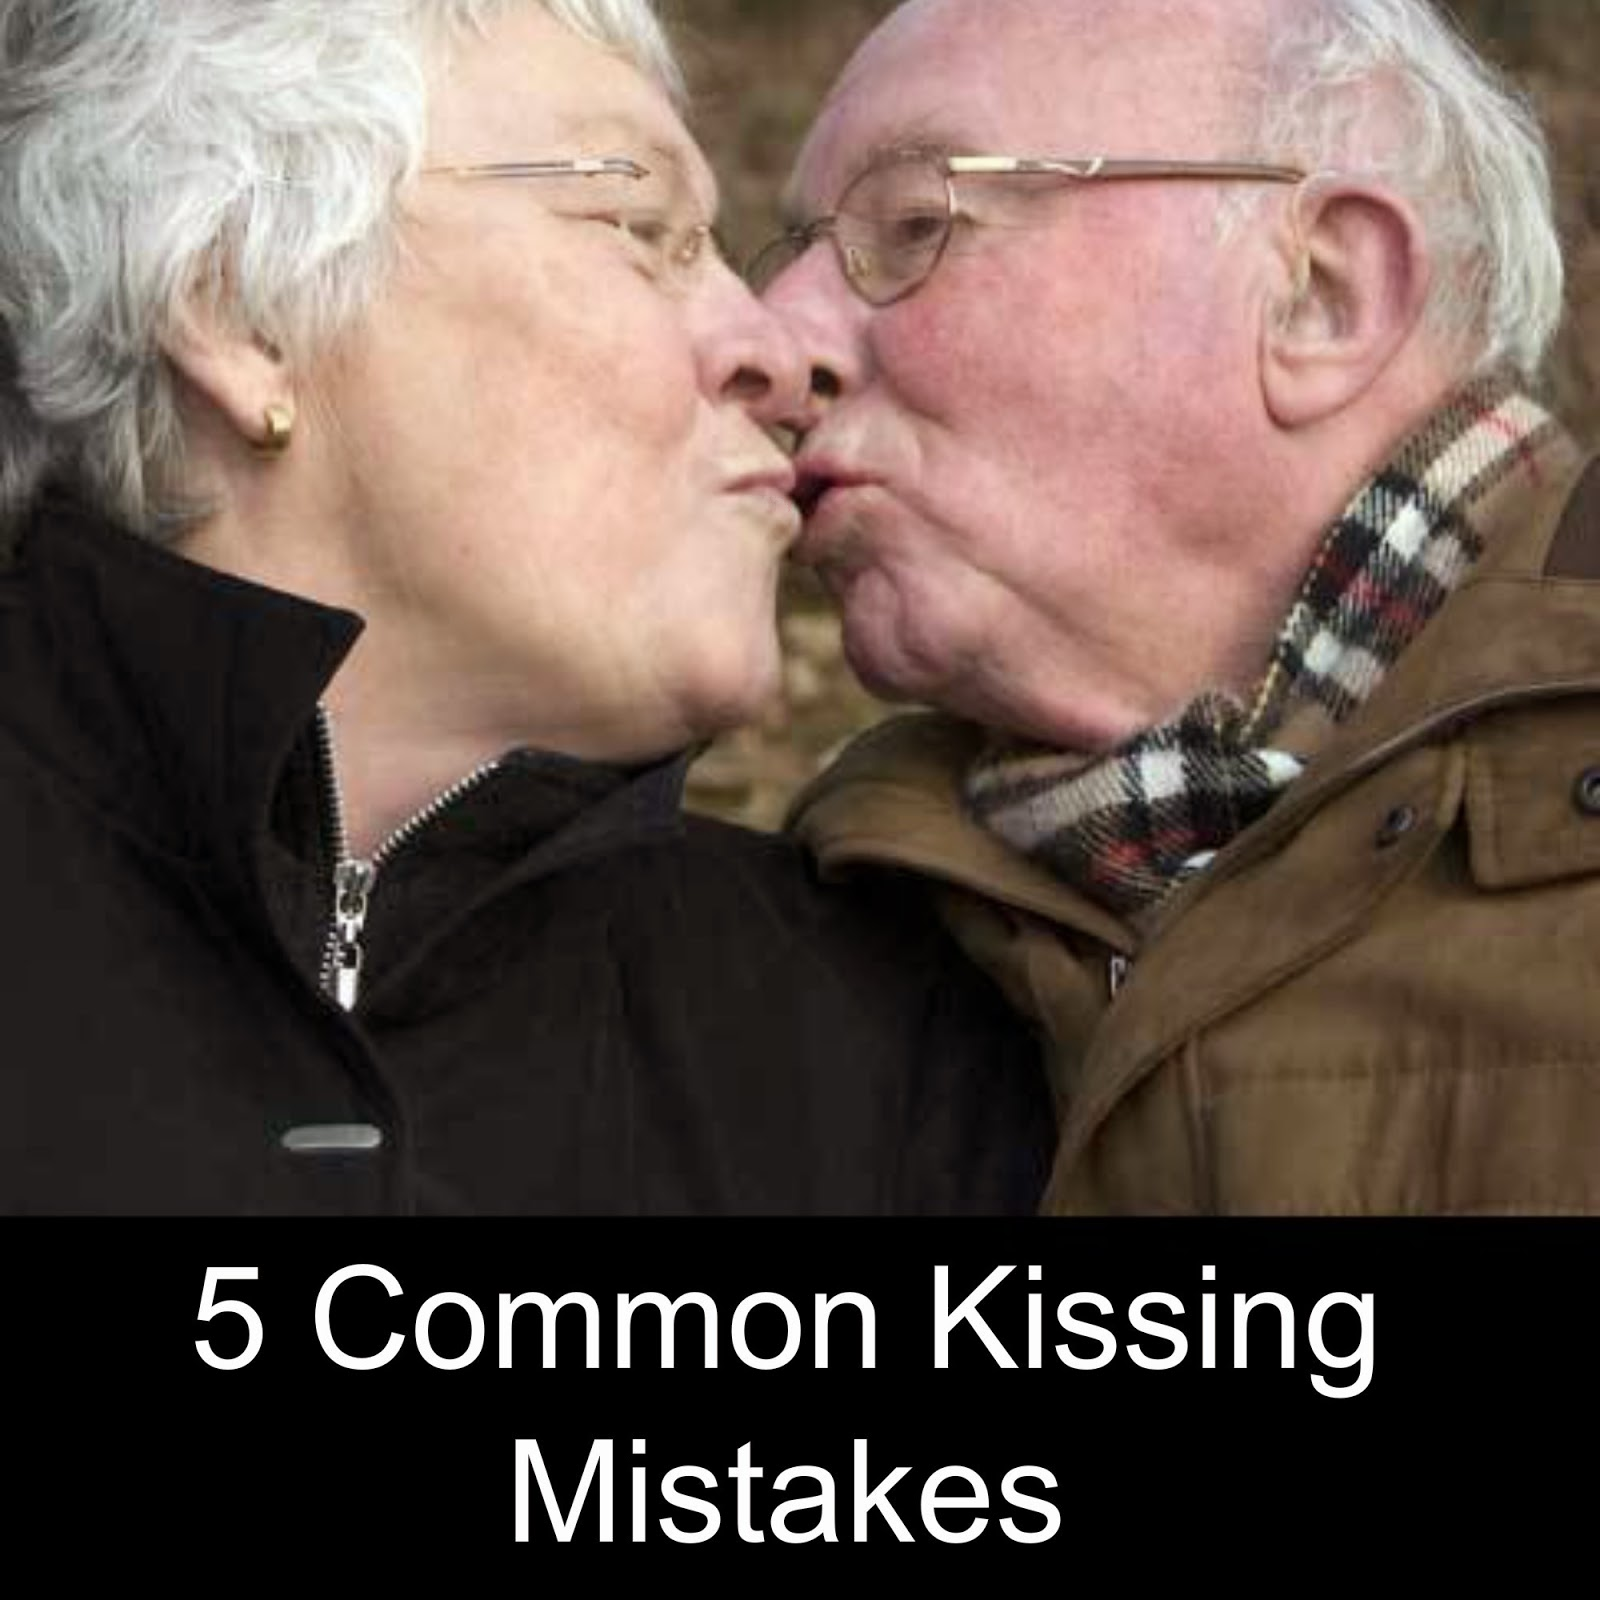 How to avoid bad breath while kissing